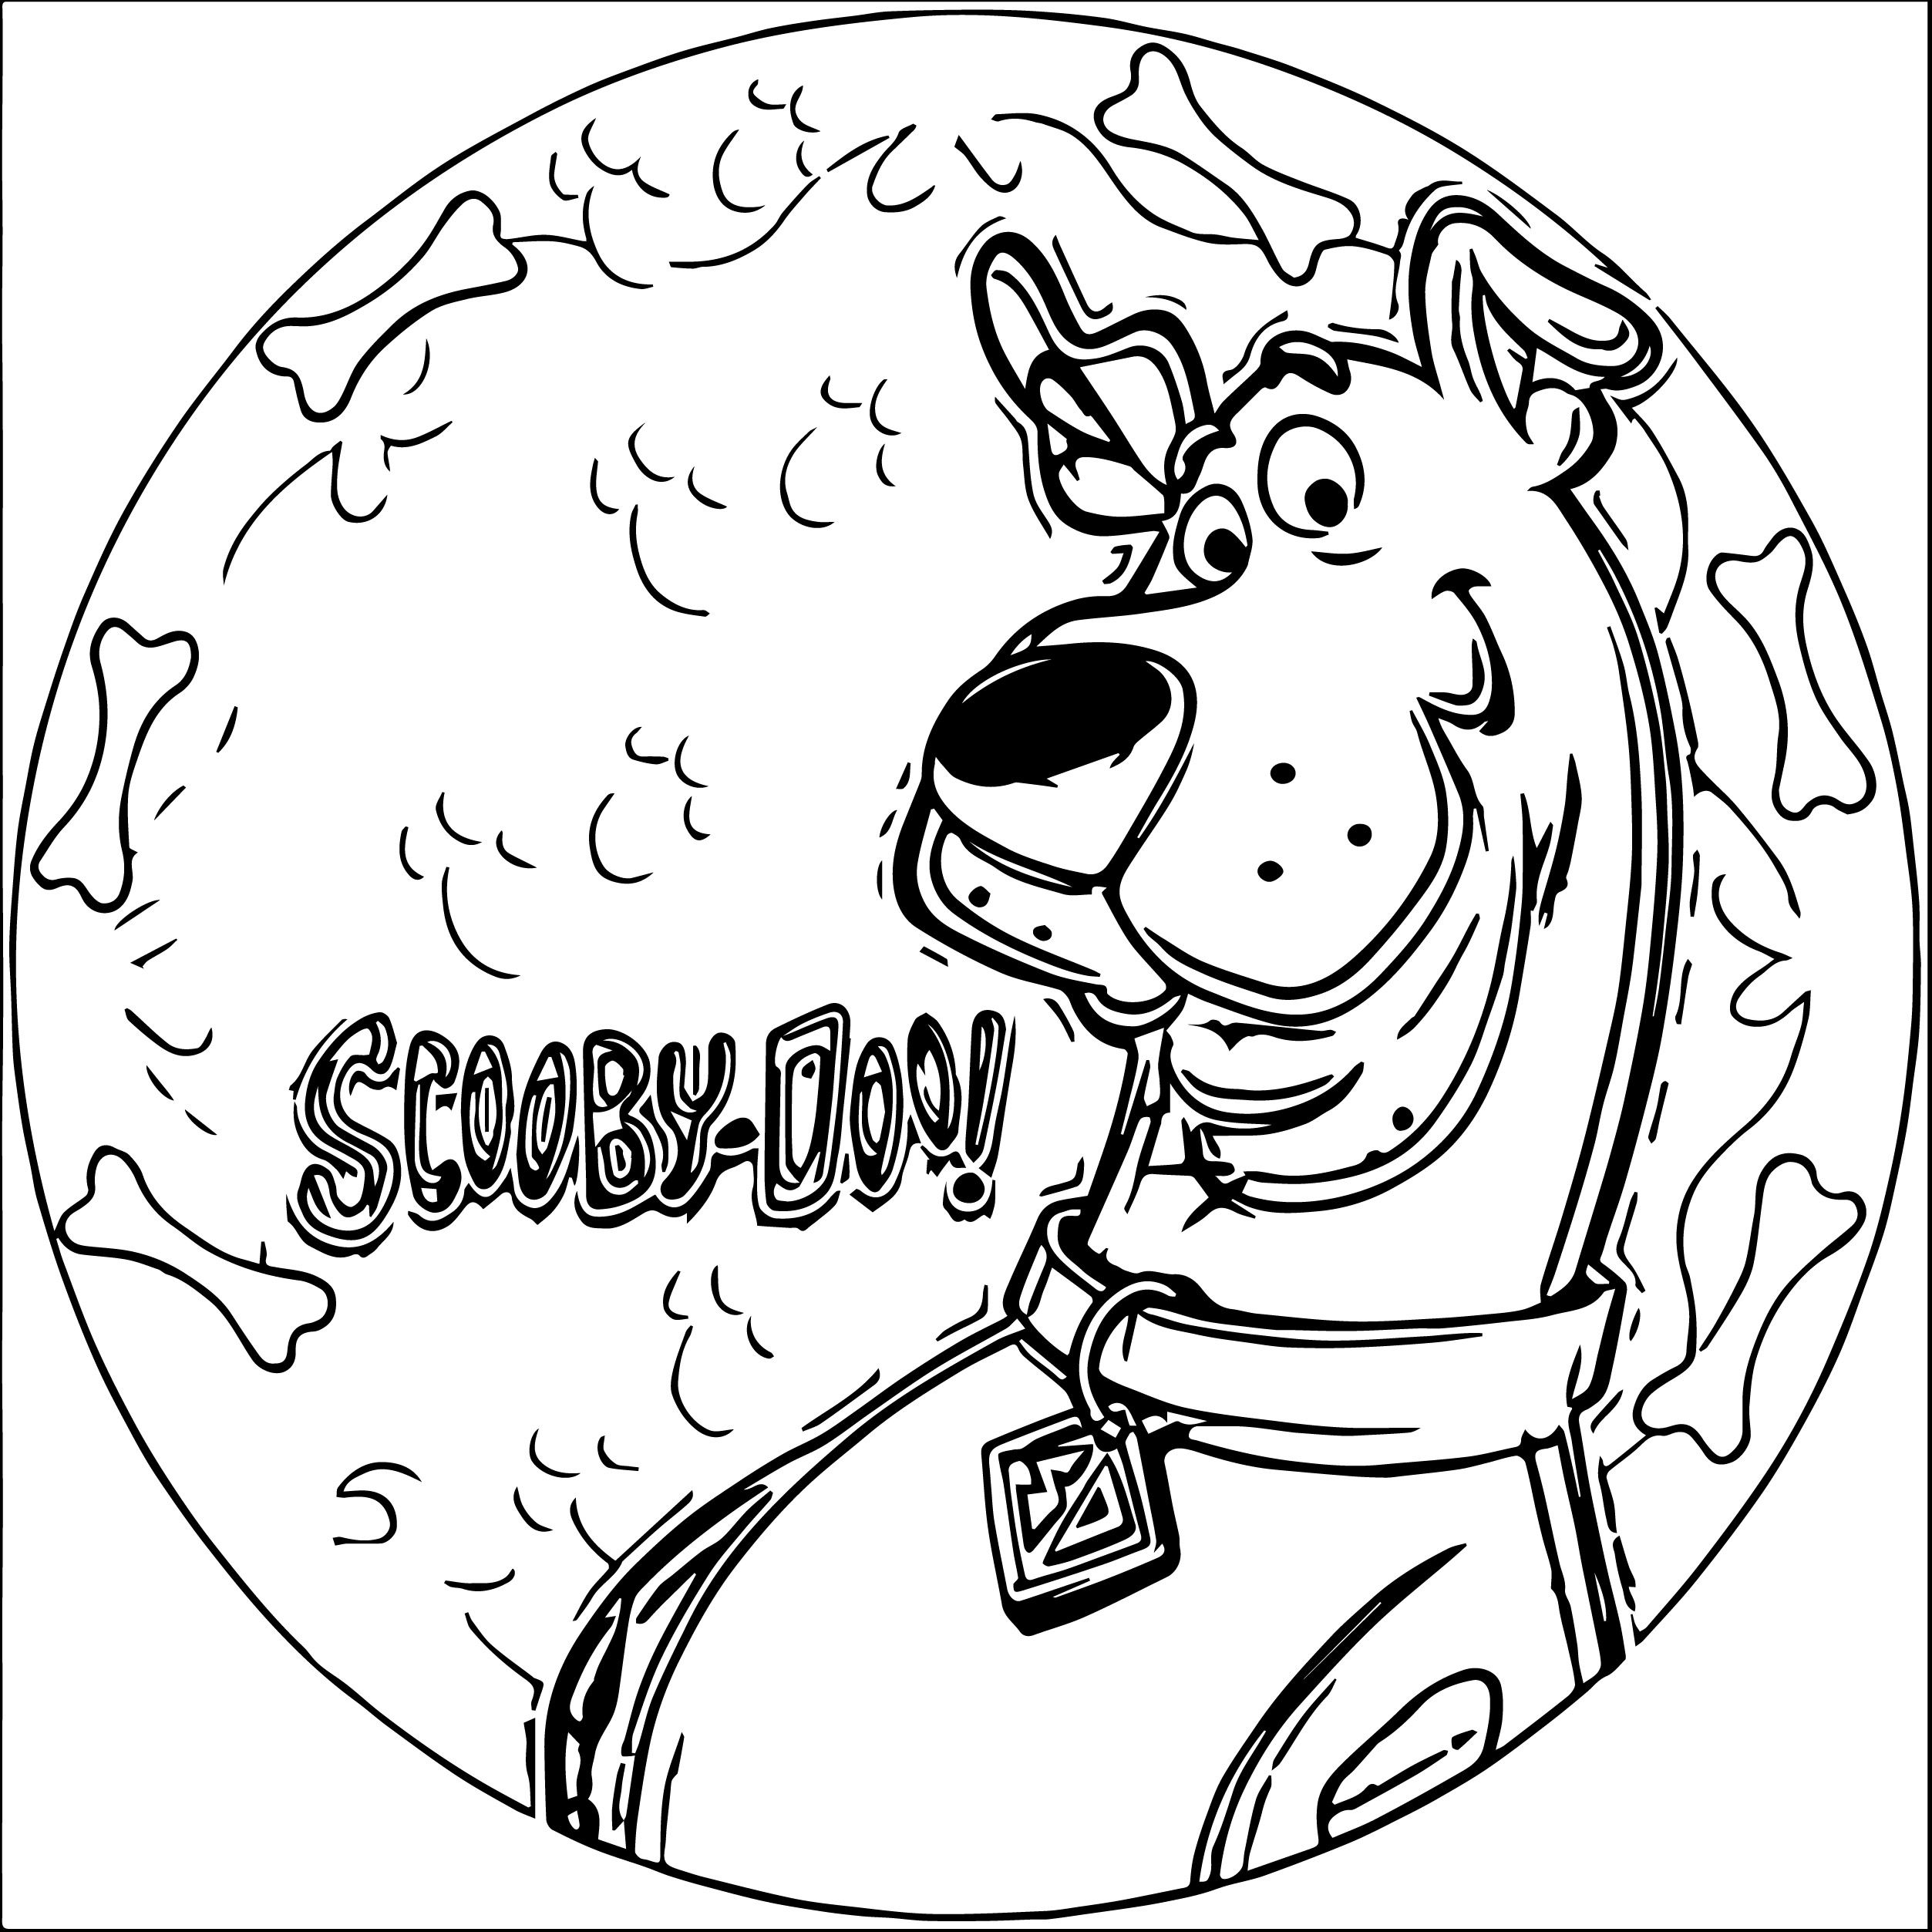 Scooby Doo Christmas Coloring Pages Printable With Wecoloringpage Pinterest